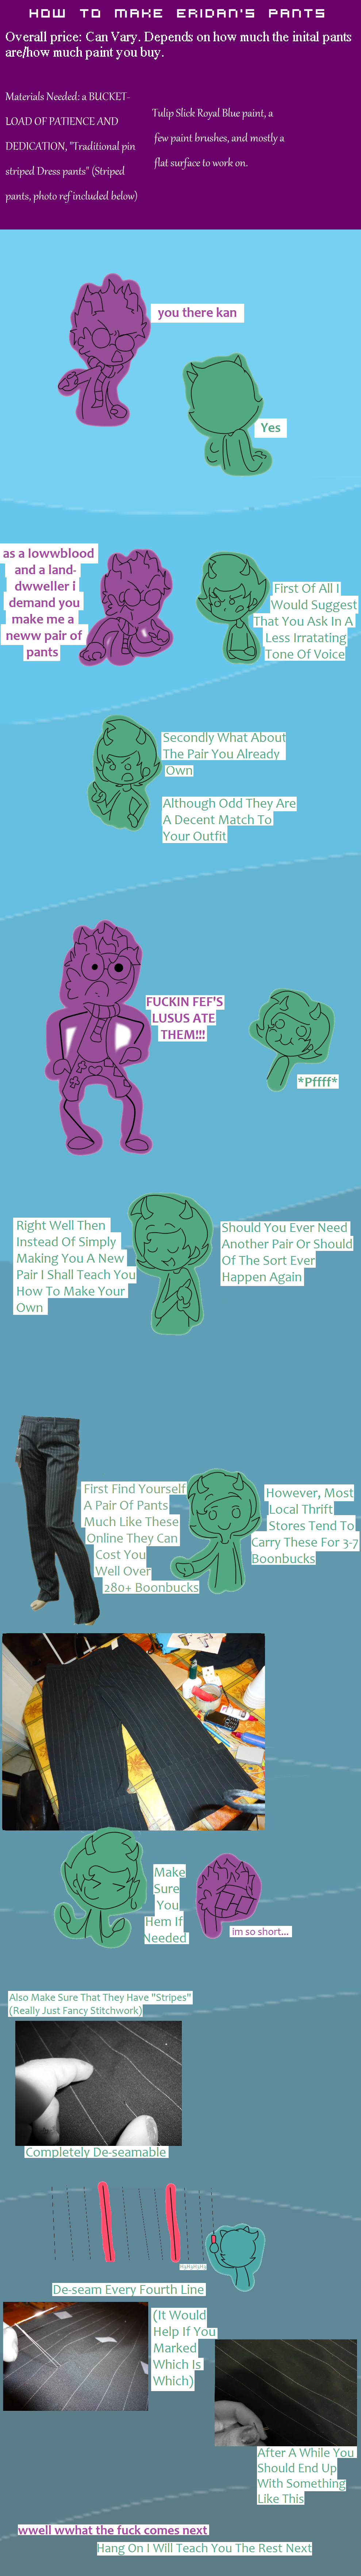 How to: Eridans' pants tutorial and tips pt1